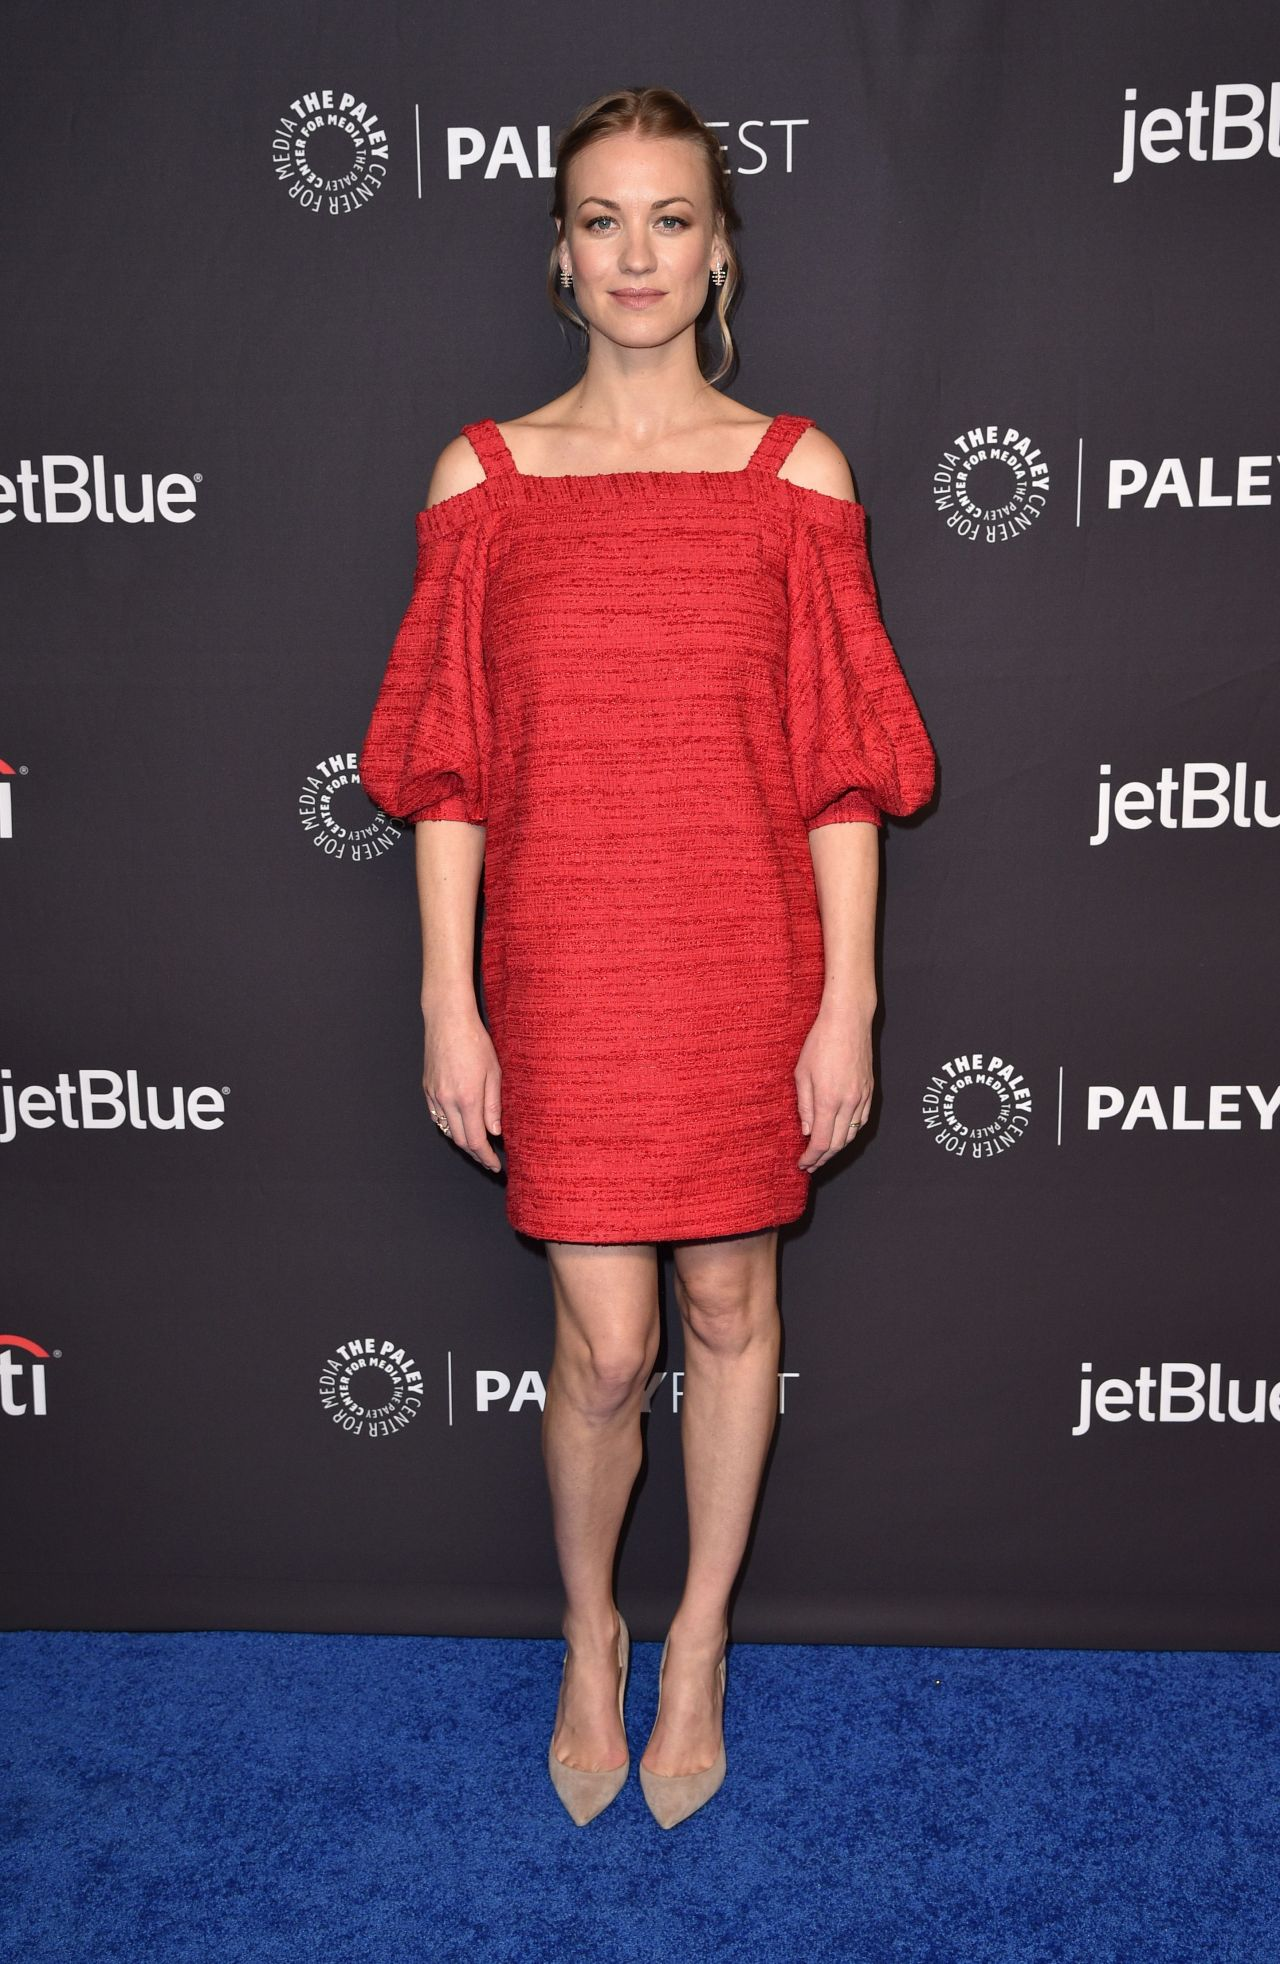 http://celebmafia.com/wp-content/uploads/2018/03/yvonne-strahovski-the-handmaid-s-tale-panel-at-35th-annual-paleyfest-in-la-9.jpg